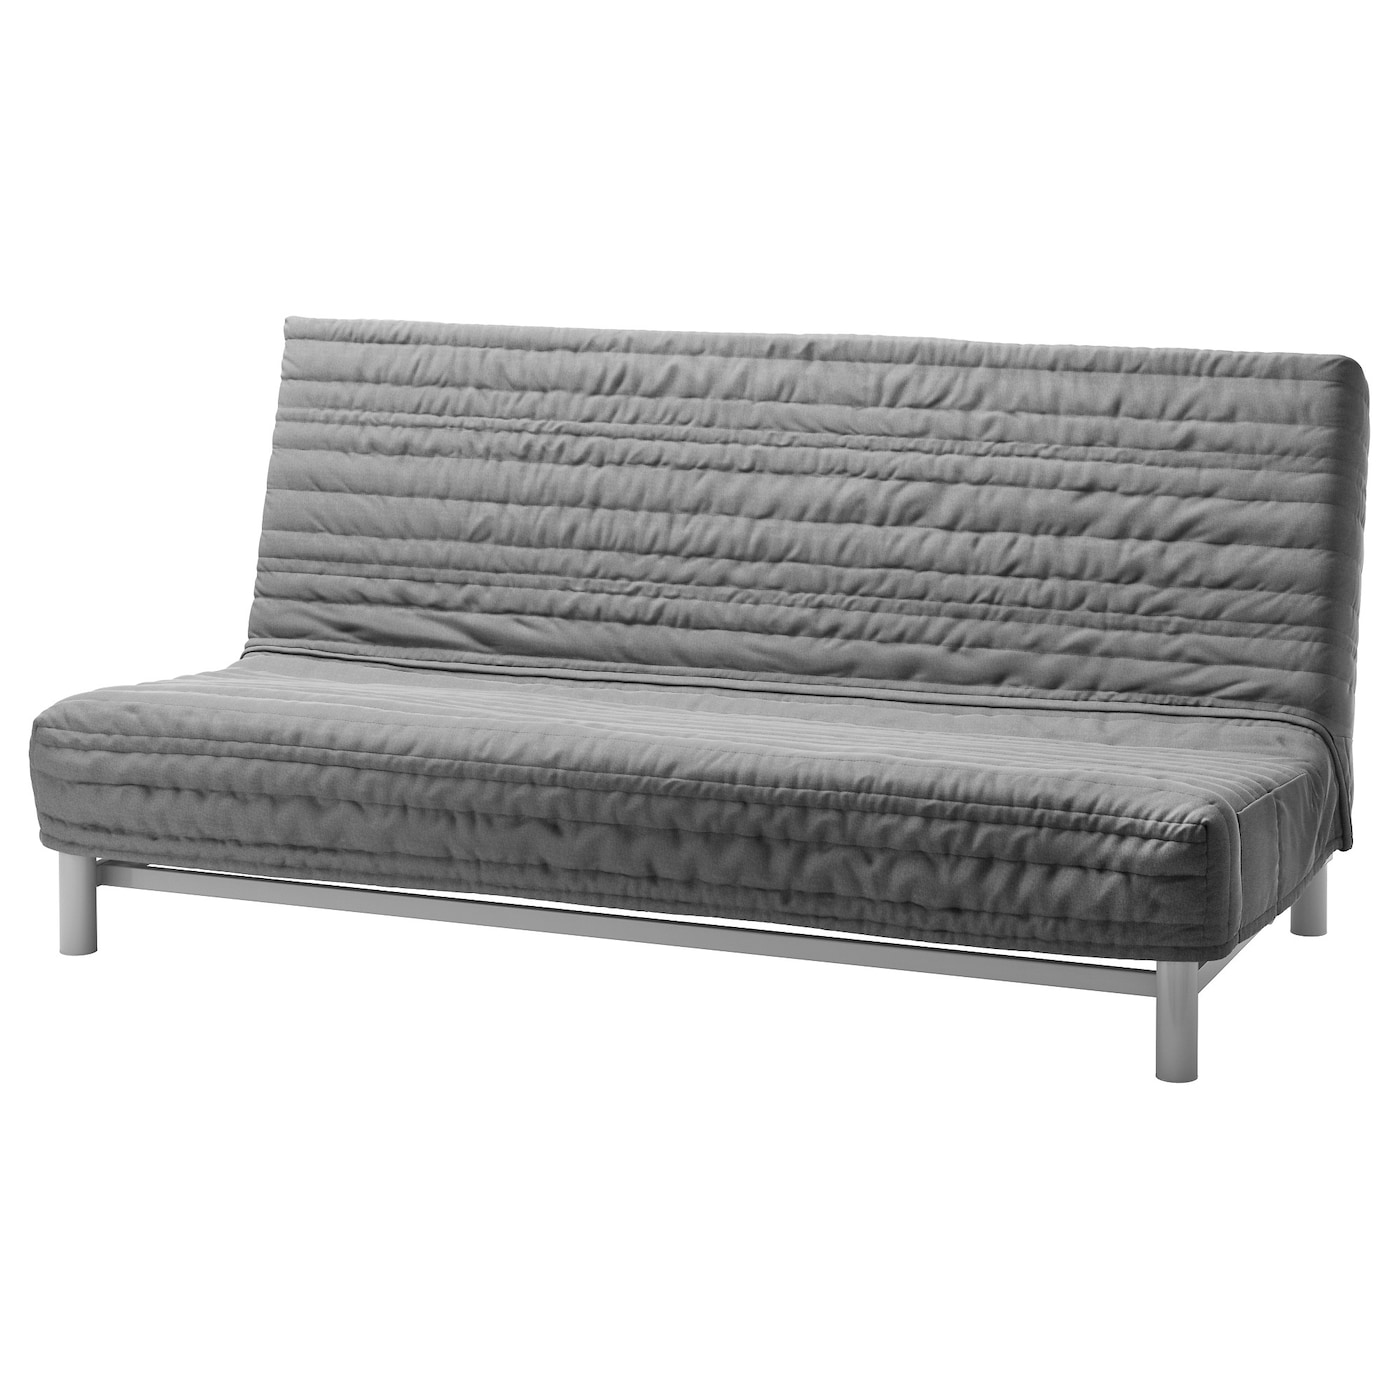 BEDDINGE L–V…S Three seat sofa bed Knisa light grey IKEA